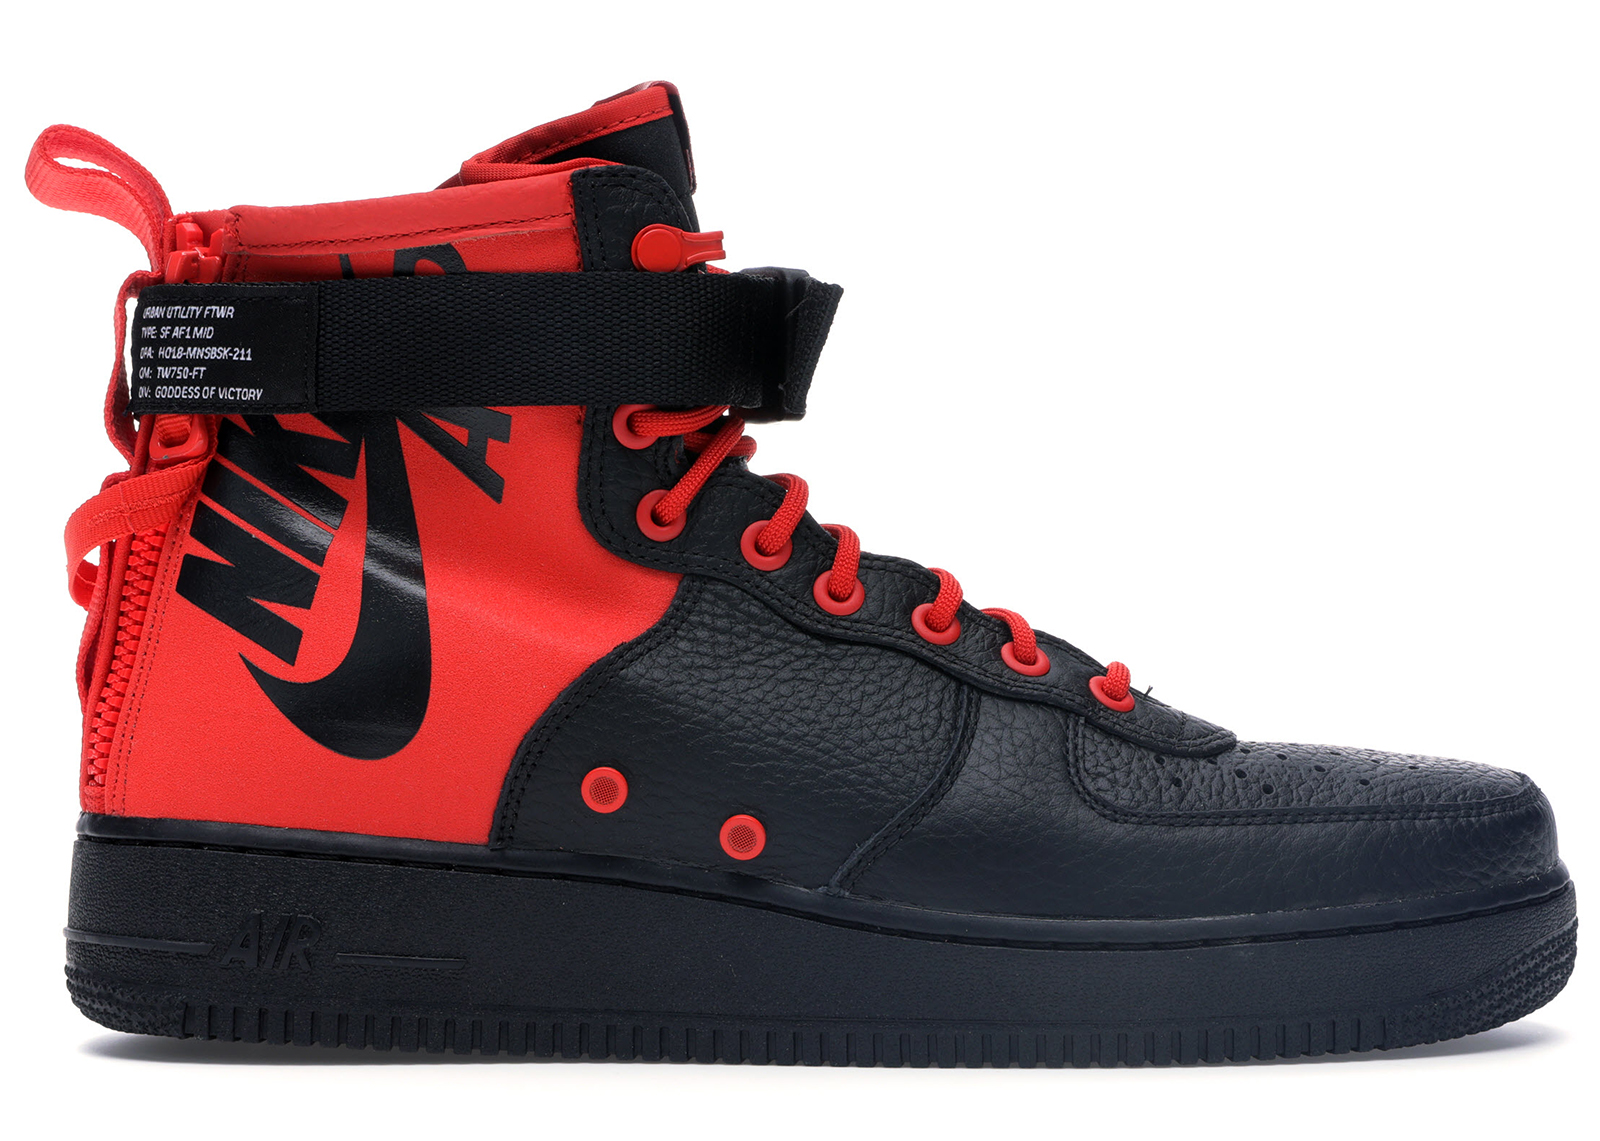 Nike SF Air Force 1 Mid Habanero Red Black